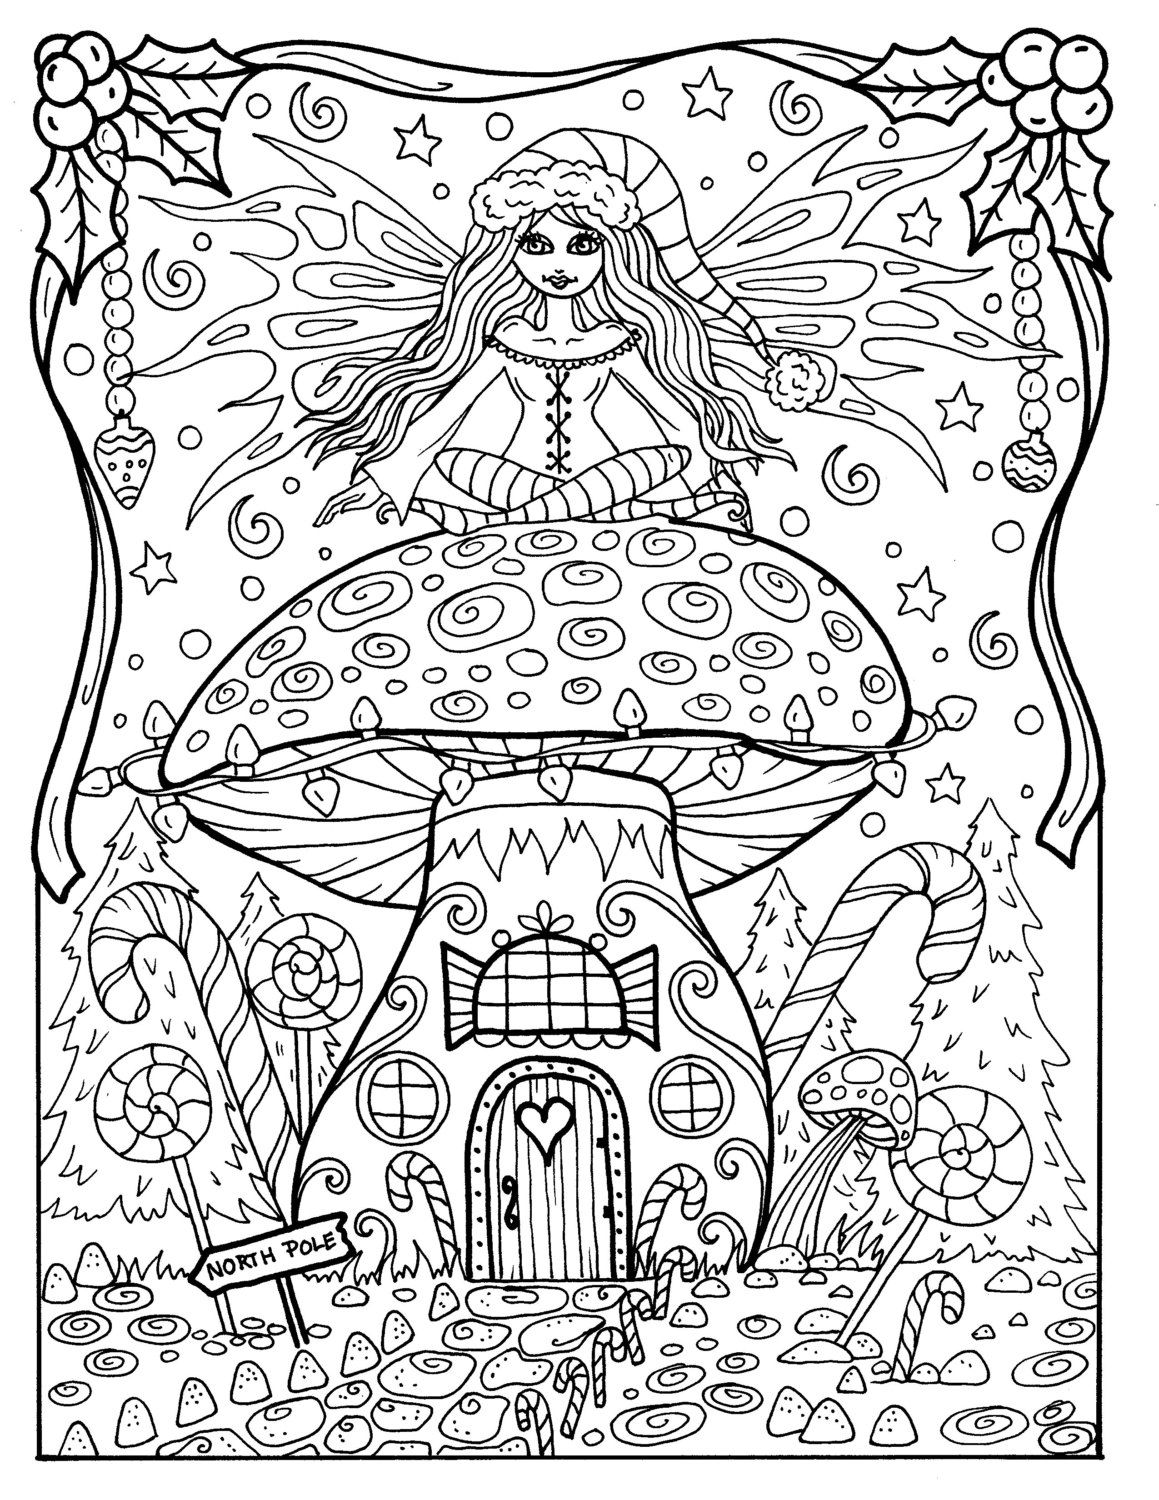 Pin von Gwen auf Coloring and drawing | Pinterest